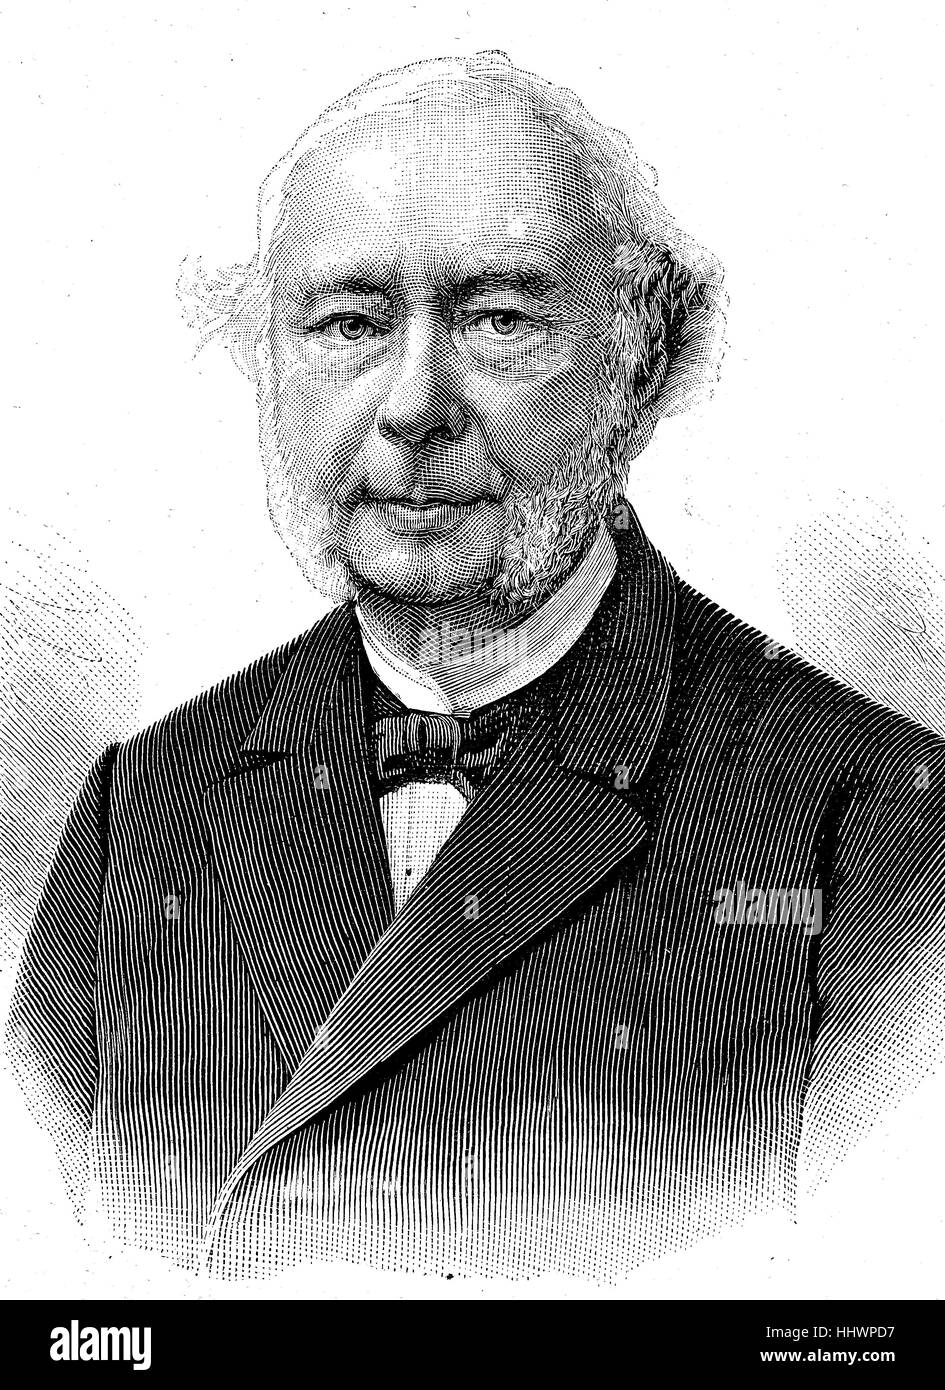 Wilhelm Georg Friedrich Roscher, October 21, 1817 - June 4, 1894, was a German economist from Hanover, historical Stock Photo